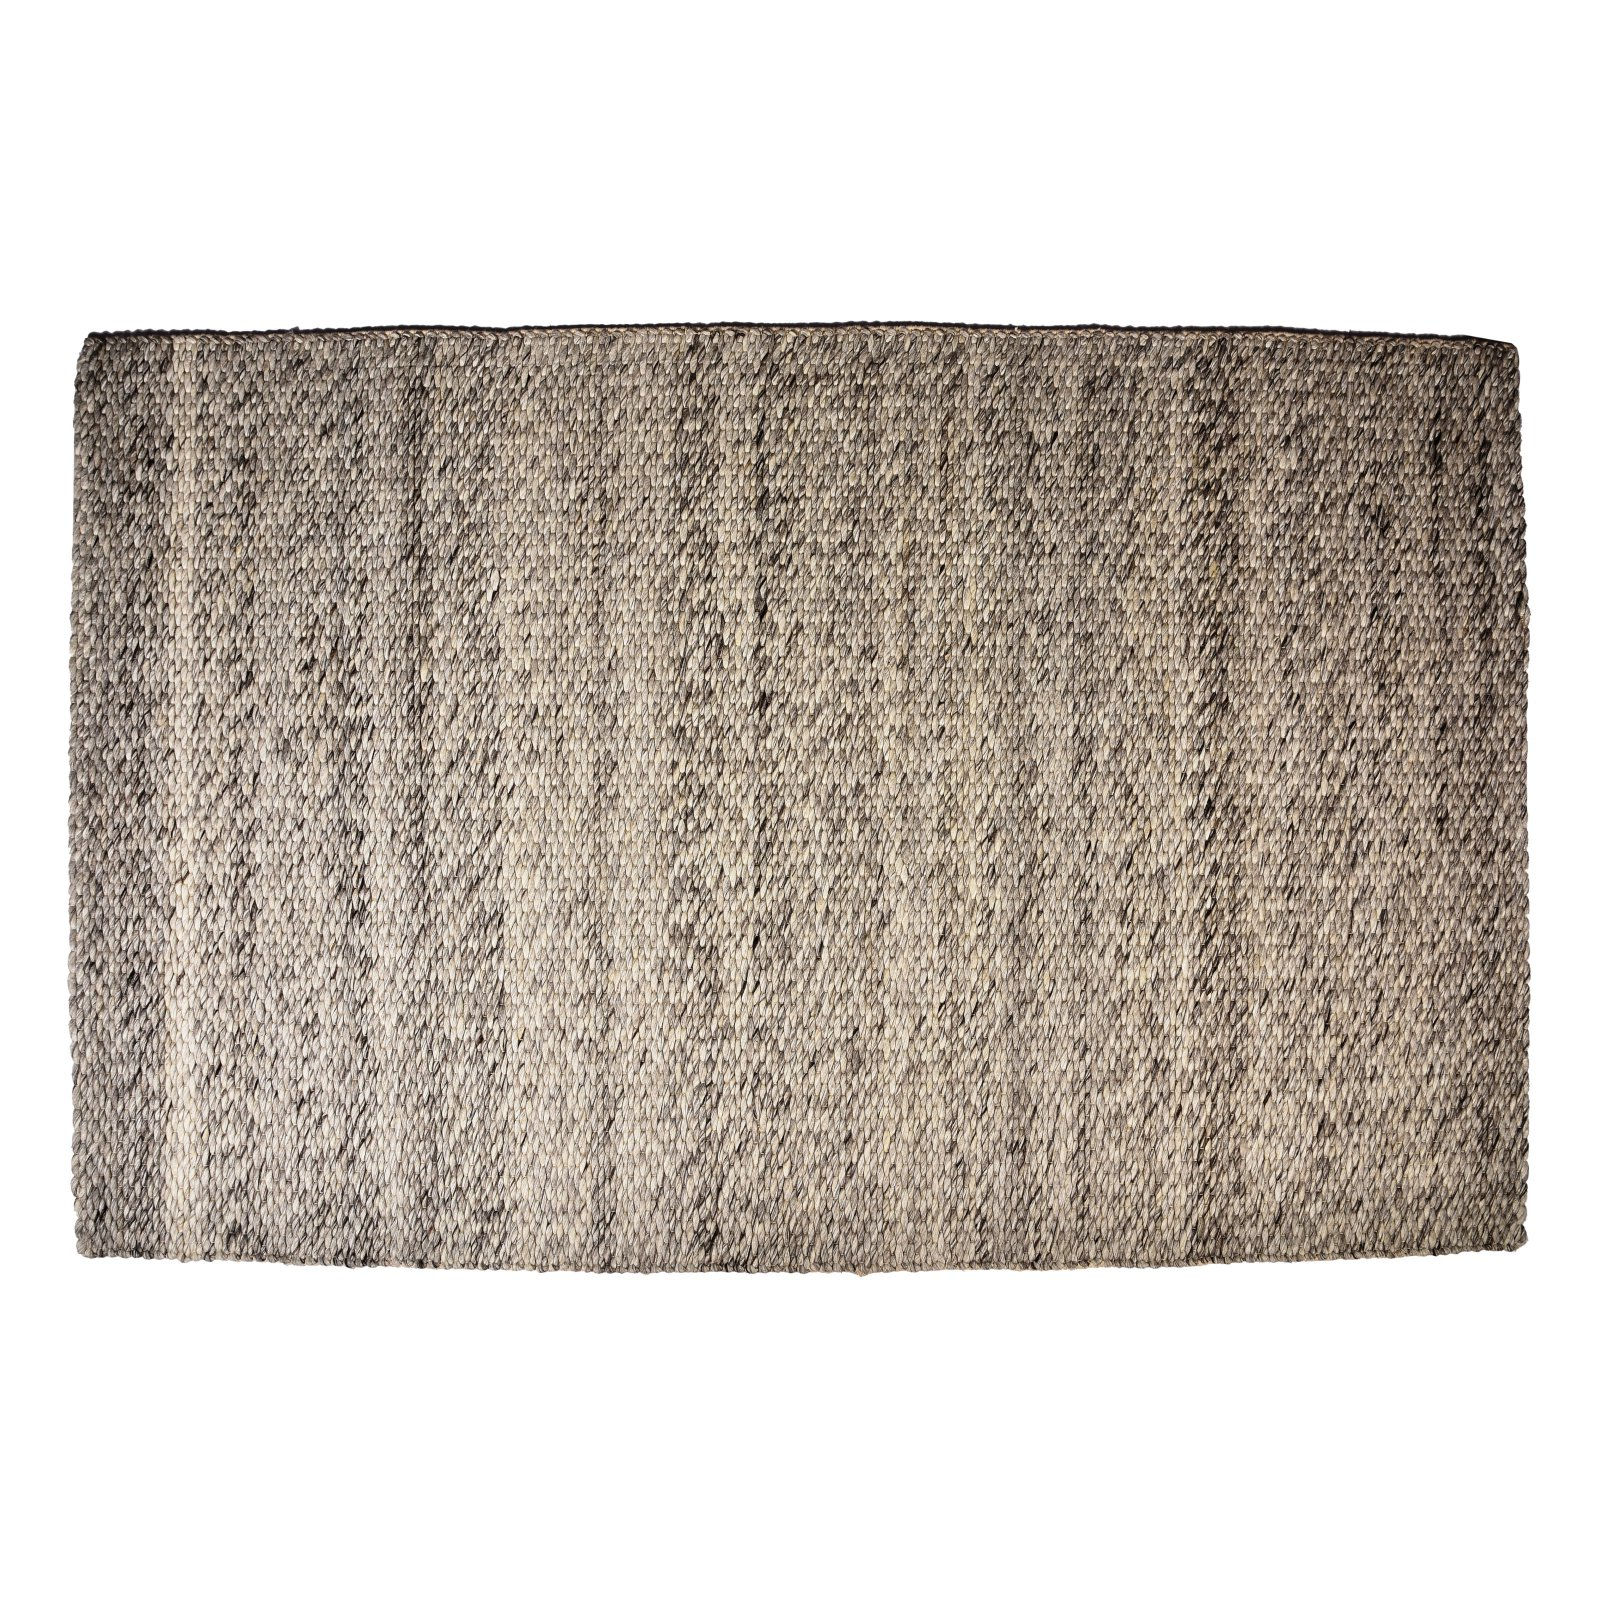 Home Weavers Inc. Maple Collection Area Rug